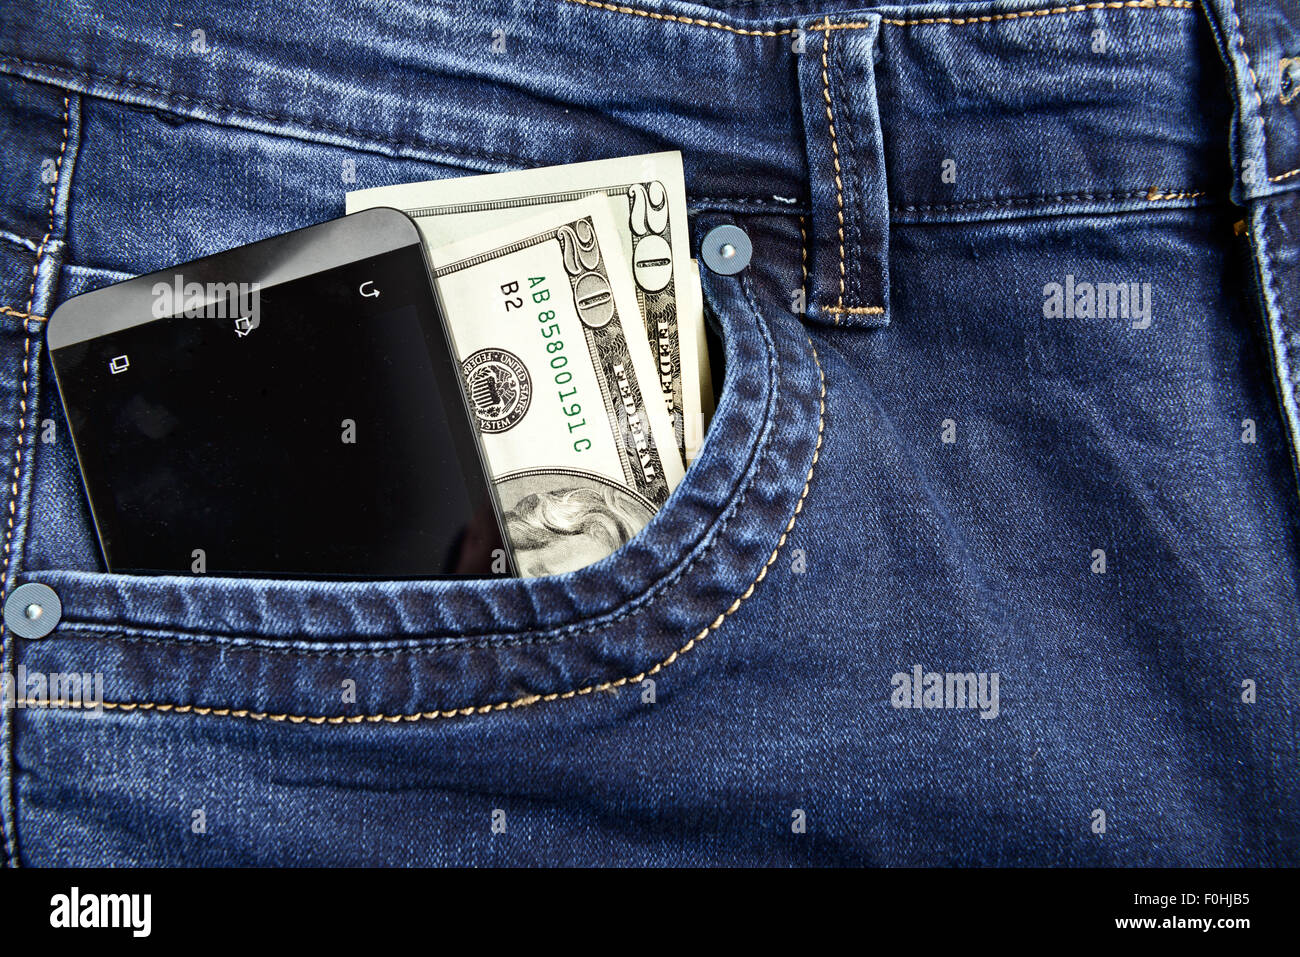 Money and smartphone in the pocket of jeans - Stock Image